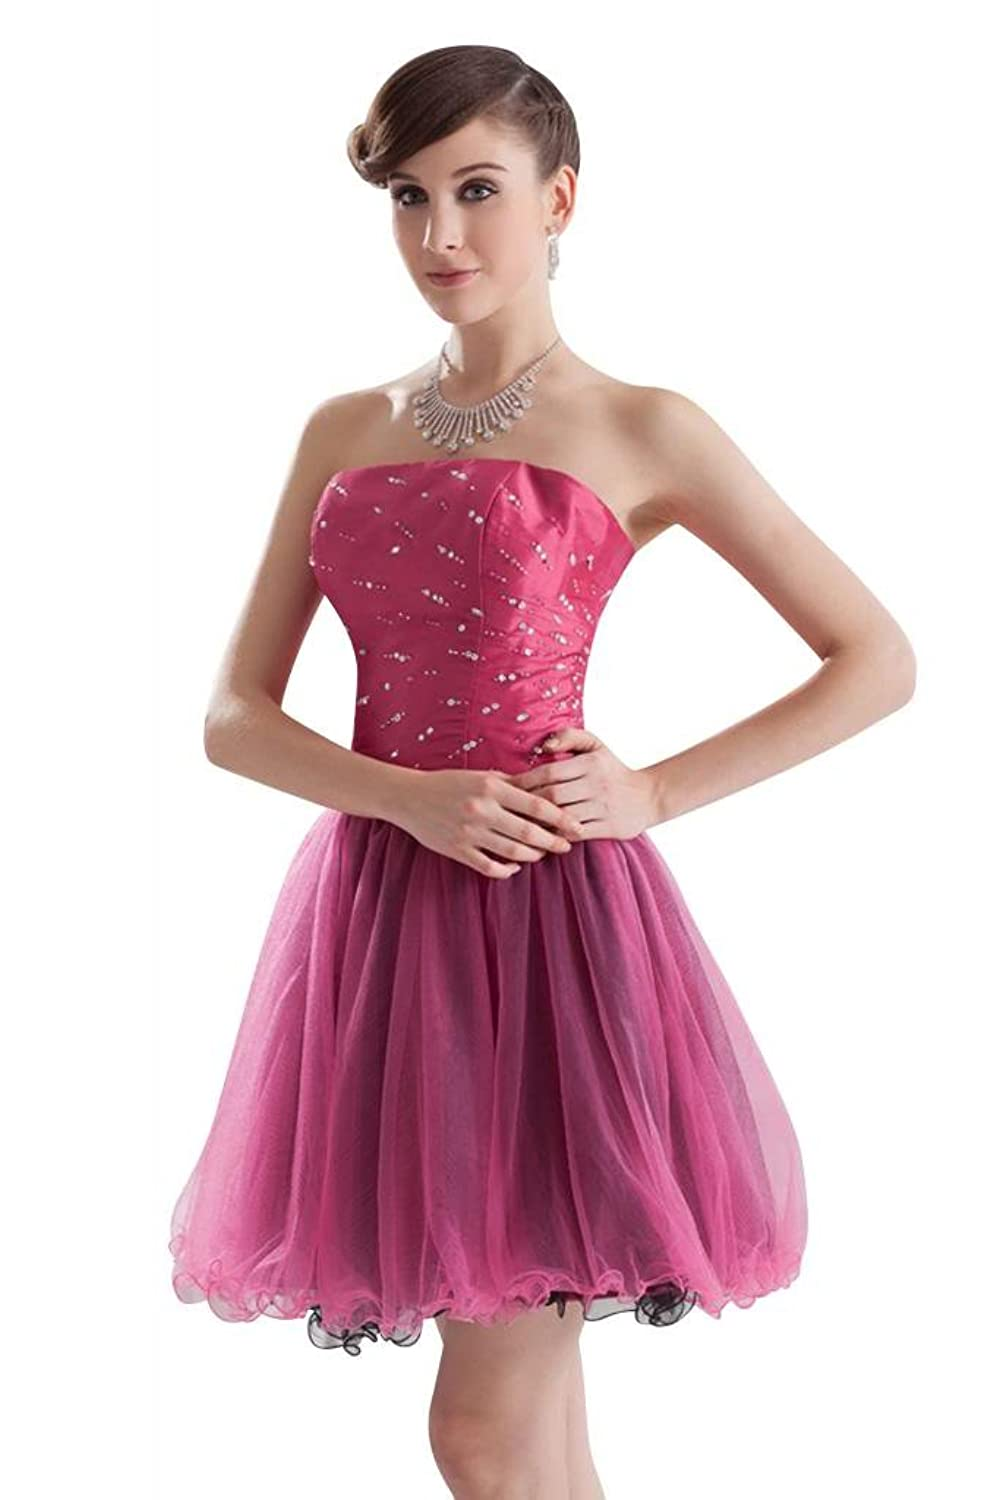 GEORGE BRIDE Attractive Fashion Prom Gown with Beaded Bodice